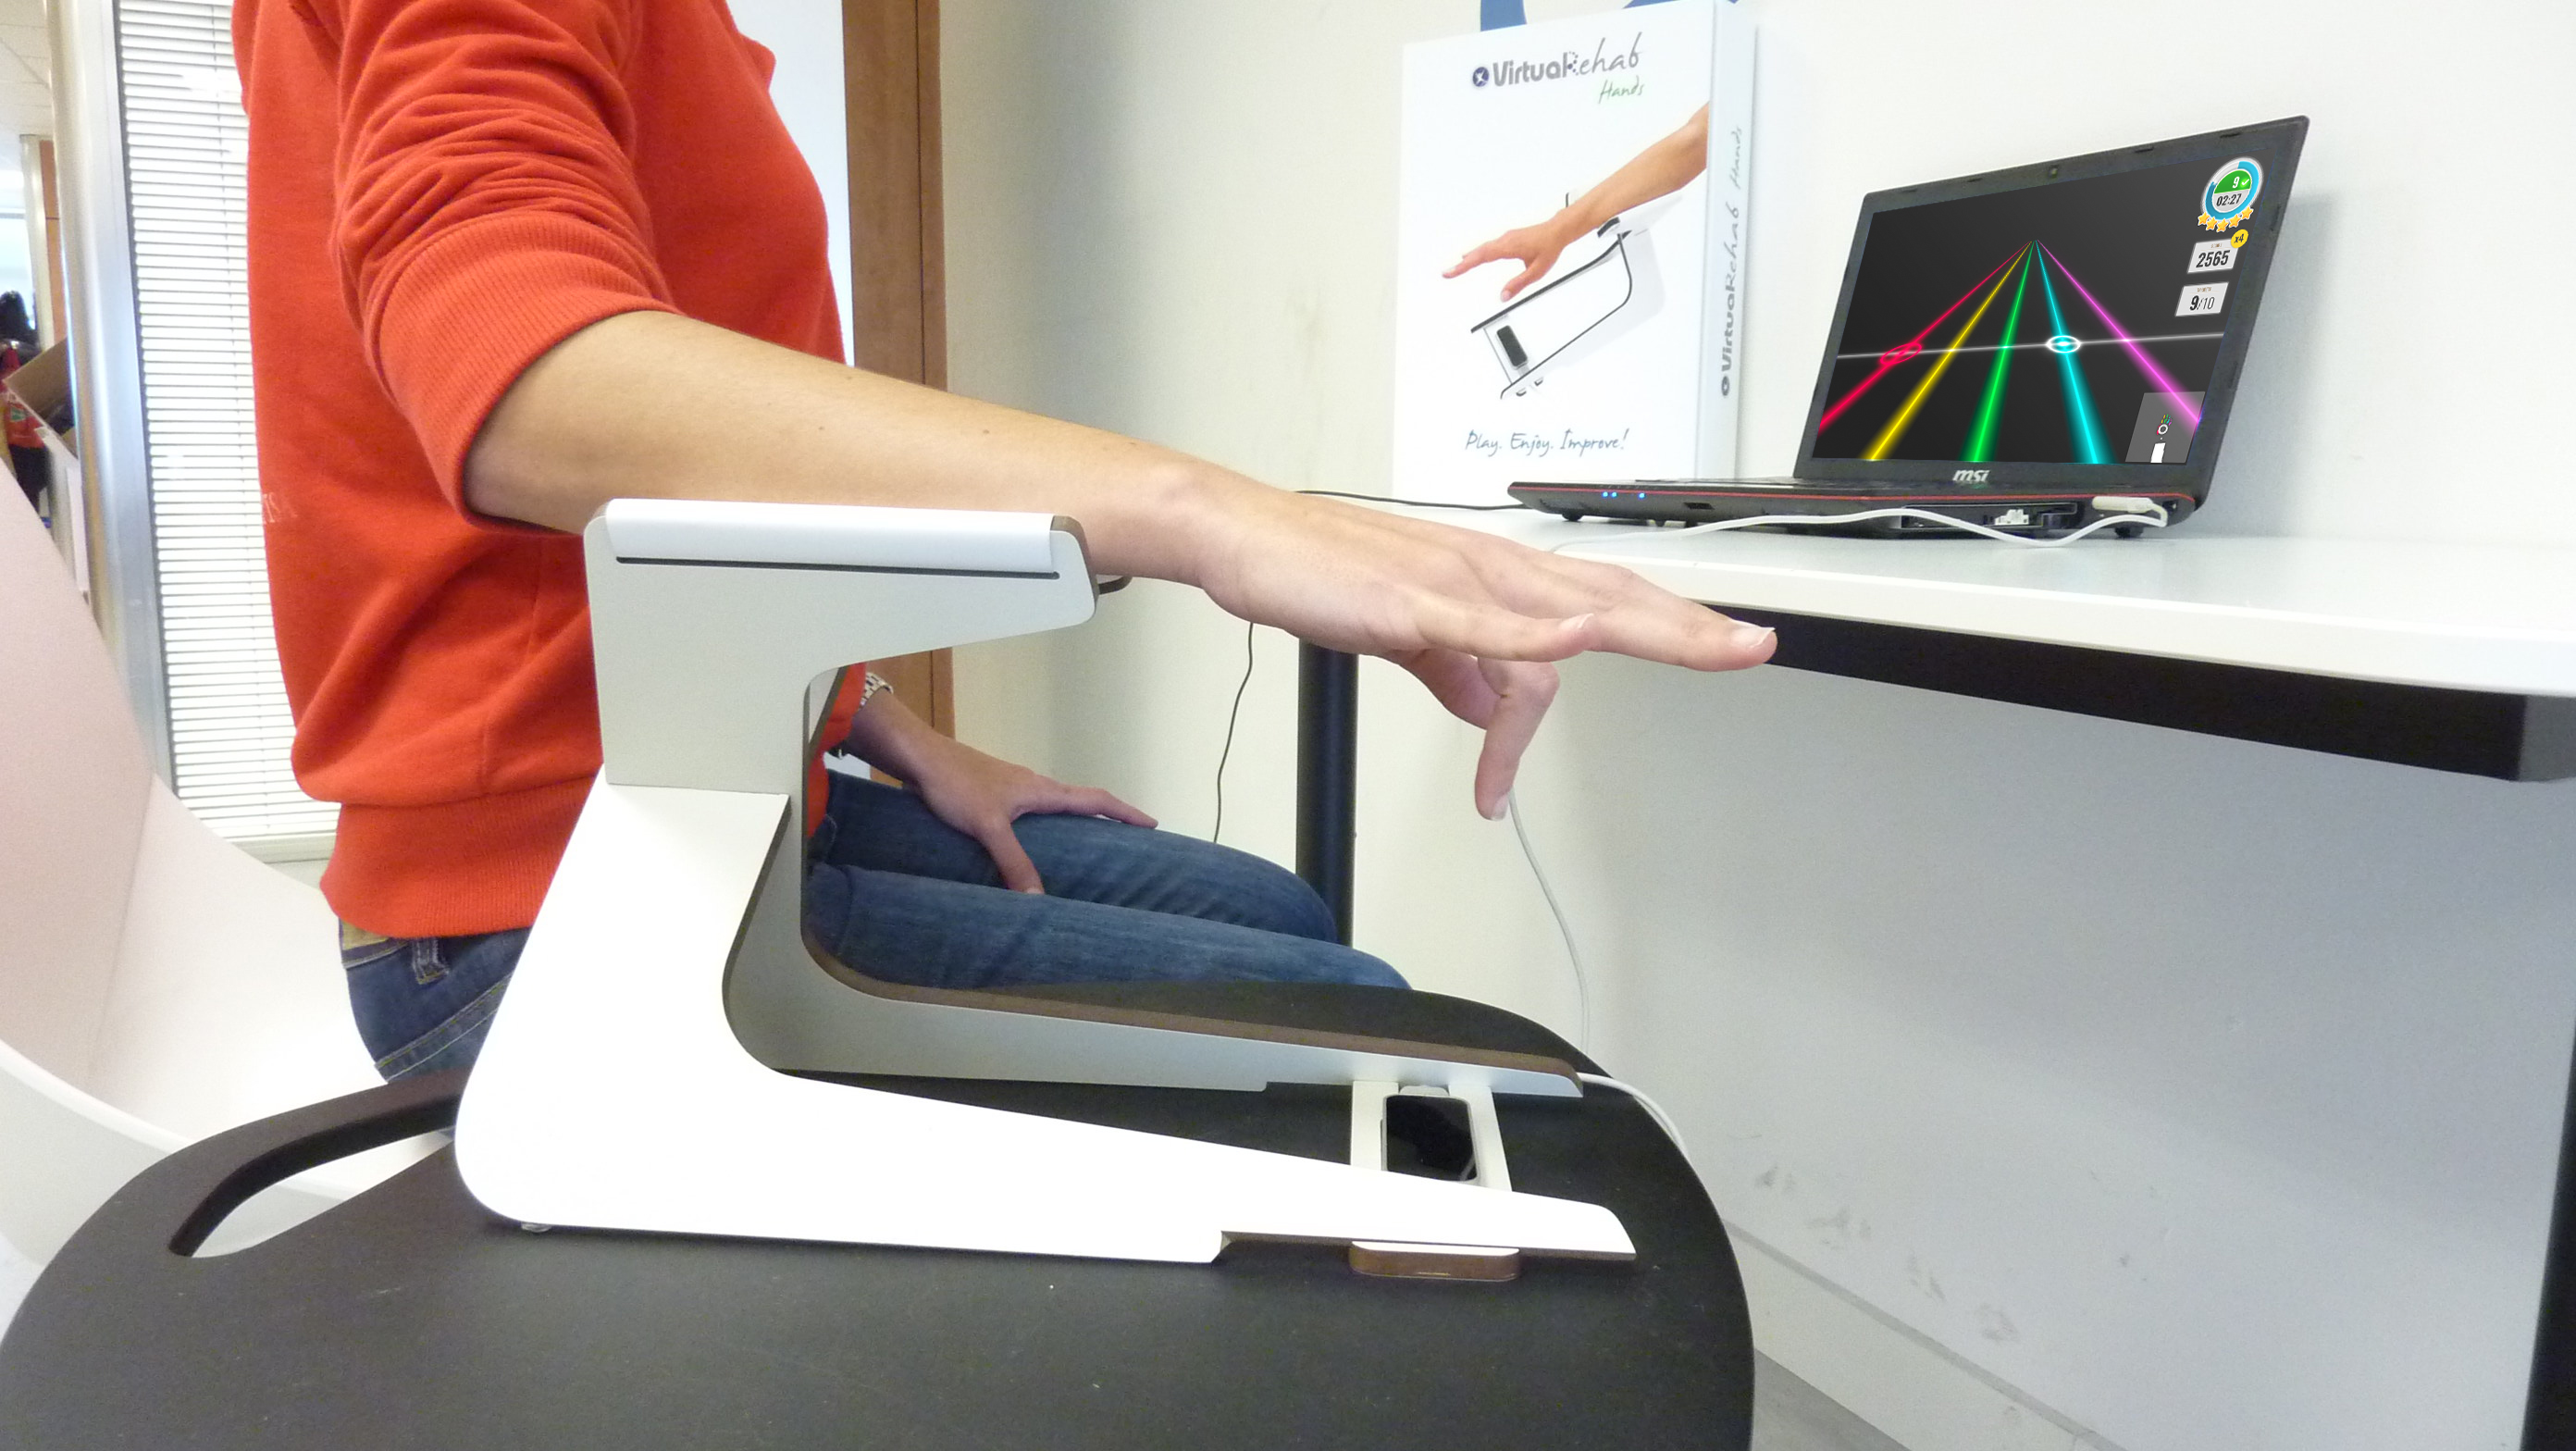 Virtualrehab hands